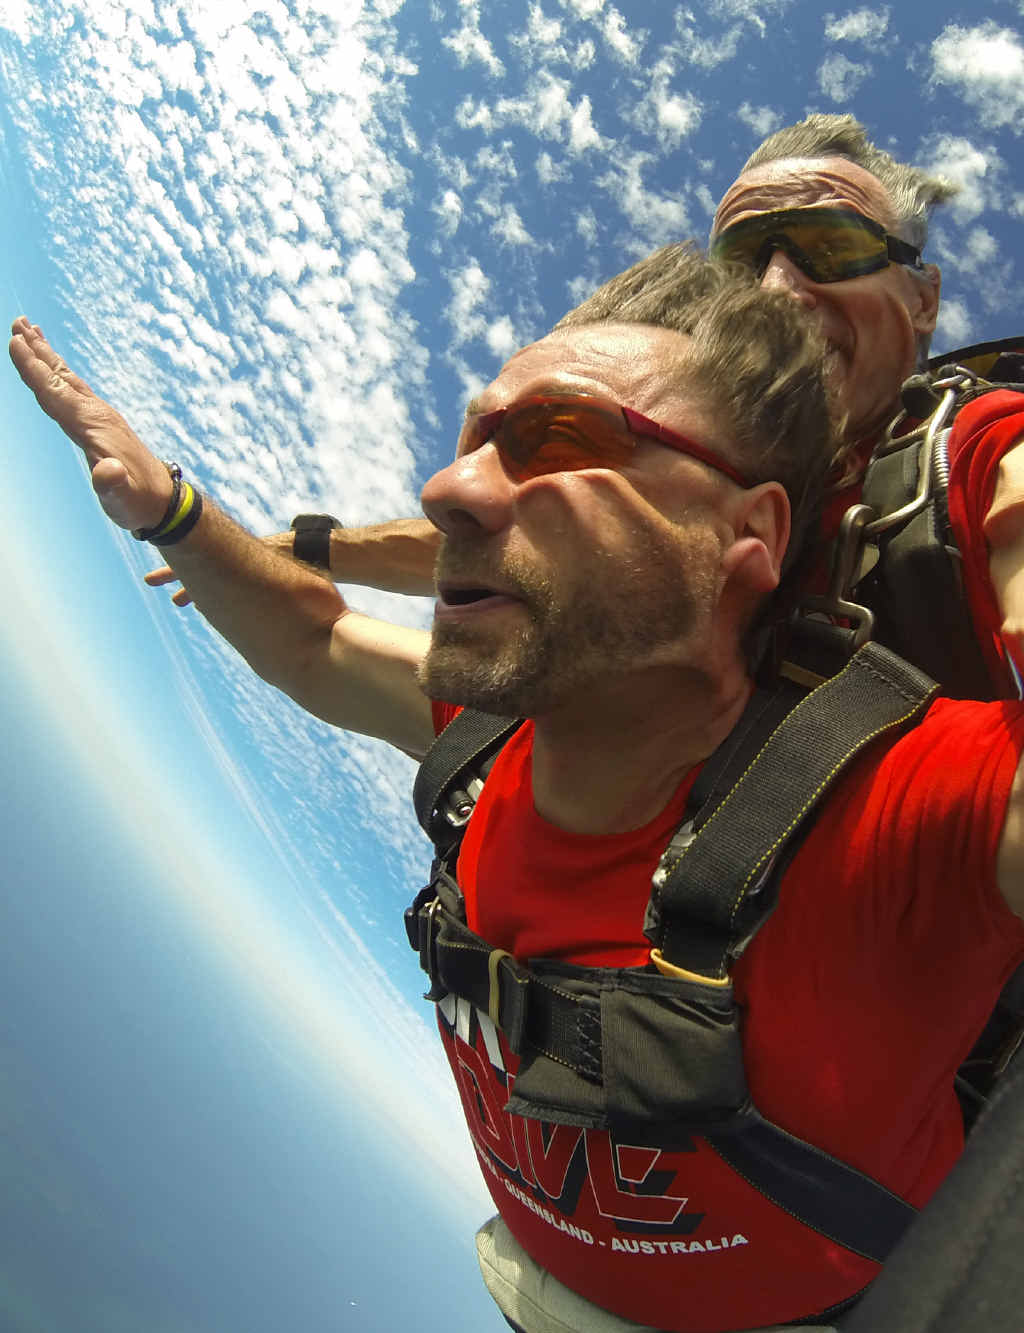 DAY IN THE LIFE: Vladimir Kroc and Tibor Glesk feel the air rush past while skydiving.